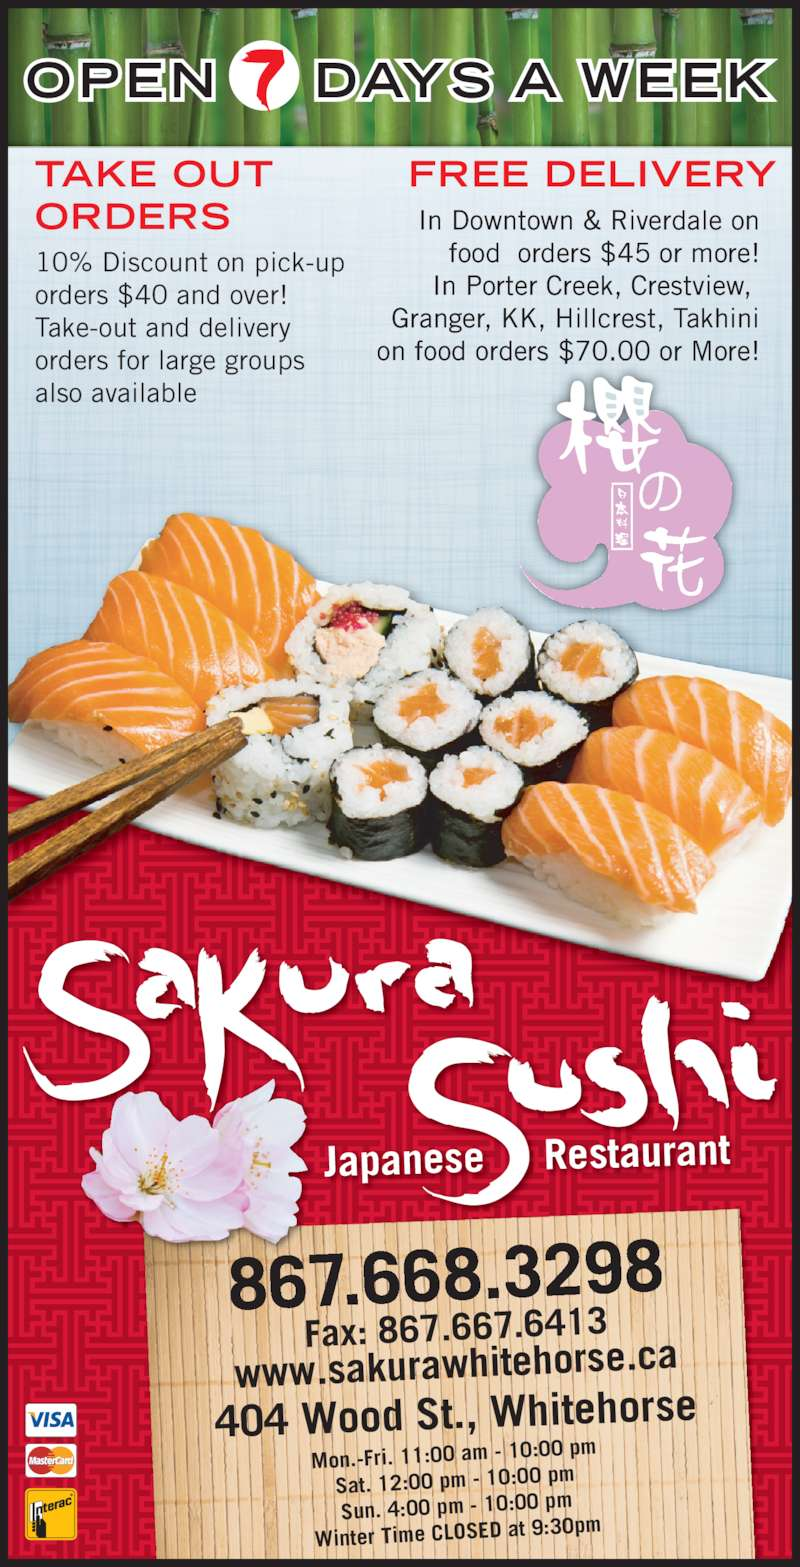 Golden Sakura Sushi Japanese Restaurant (867-668-3298) - Display Ad - TAKE OUT  Granger, KK, Hillcrest, Takhini on food orders $70.00 or More! OPEN DAYS A WEEK 867.668.3298  Mon.-Fri. 11:00 am - 10:00  pm ORDERS 10% Discount on pick-up  orders $40 and over! Take-out and delivery orders for large groups also available FREE DELIVERY In Downtown & Riverdale on food  orders $45 or more! In Porter Creek, Crestview,  Sat. 12:00 pm - 10:00 pm Sun. 4:00 pm - 10:00 pm Winter Time CLOSED at 9:3 0pm 404 Wood St., Whitehorse Fax: 867.667.6413 www.sakurawhitehorse.ca Japanese     Restaurant